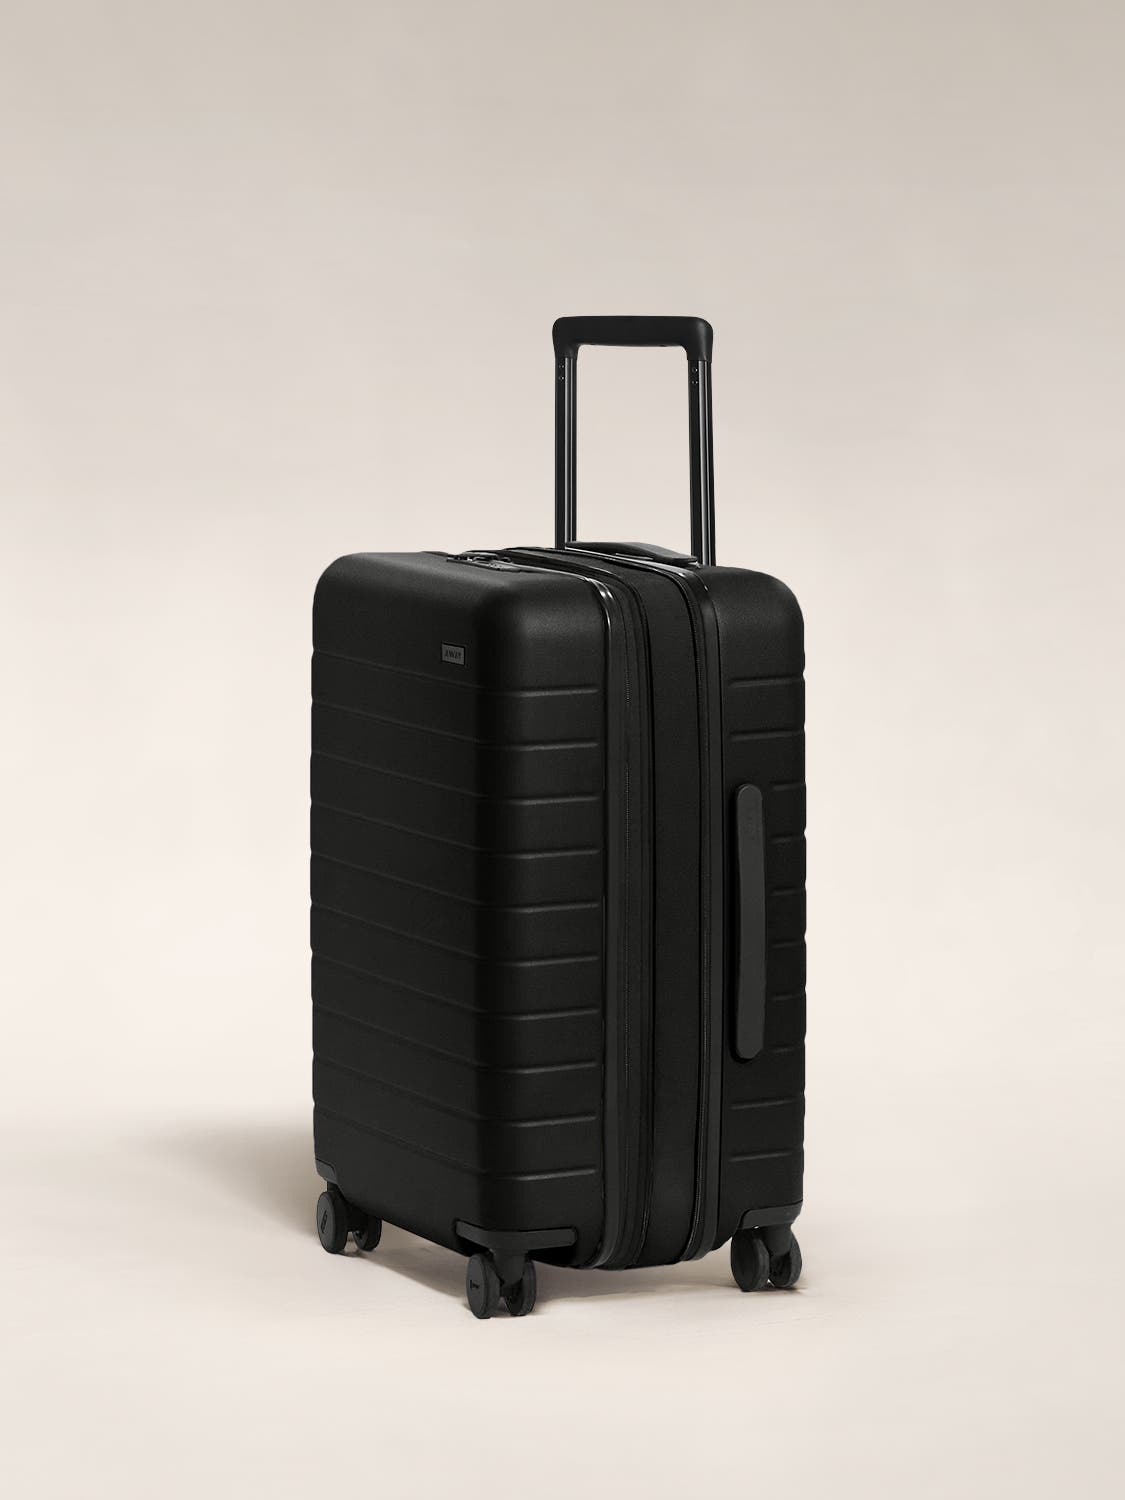 The Bigger Carry-On Flex in Black shown at an angle with raised telescoping handle.